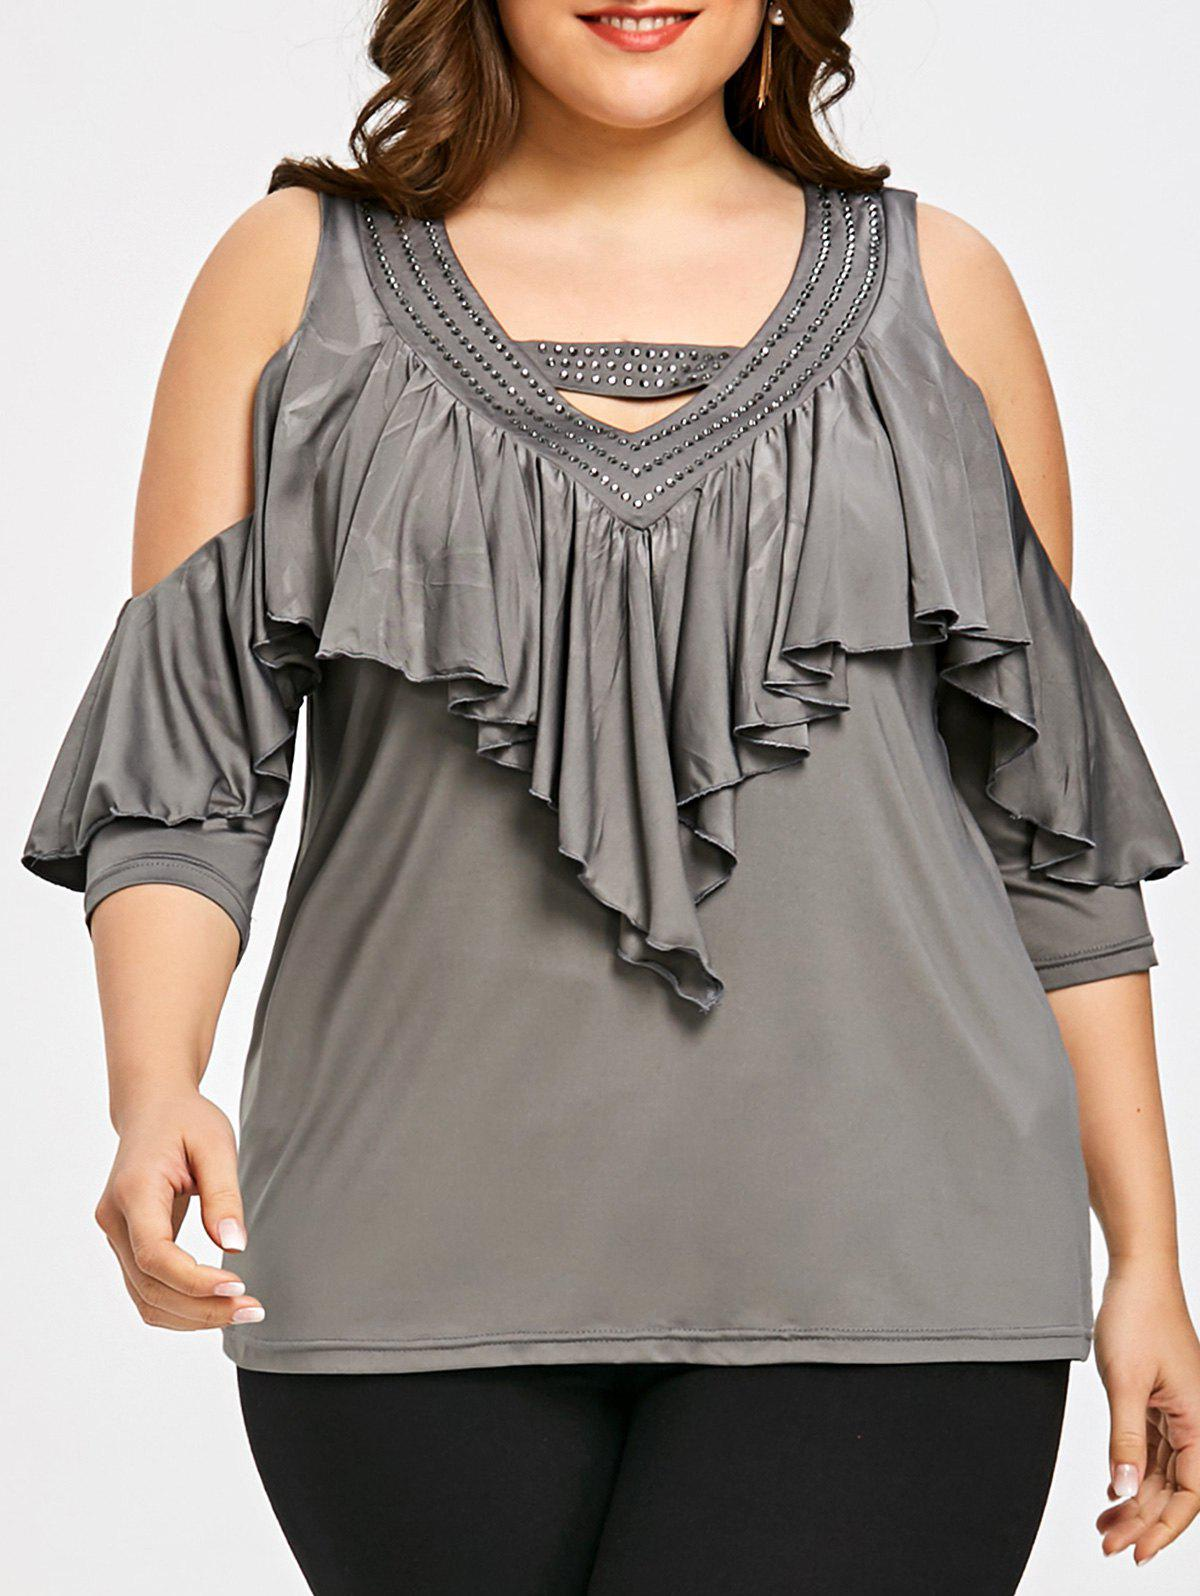 Plus Size Top 246575202